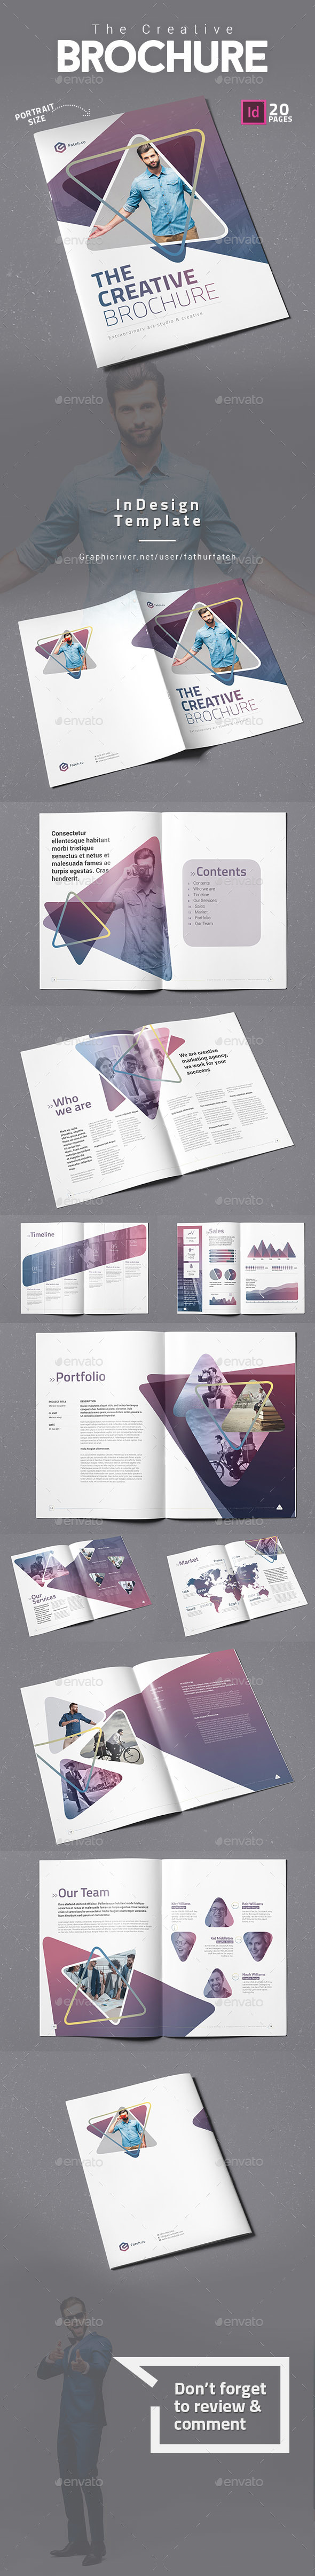 GraphicRiver The Creative Brochure Vol.4 21117375